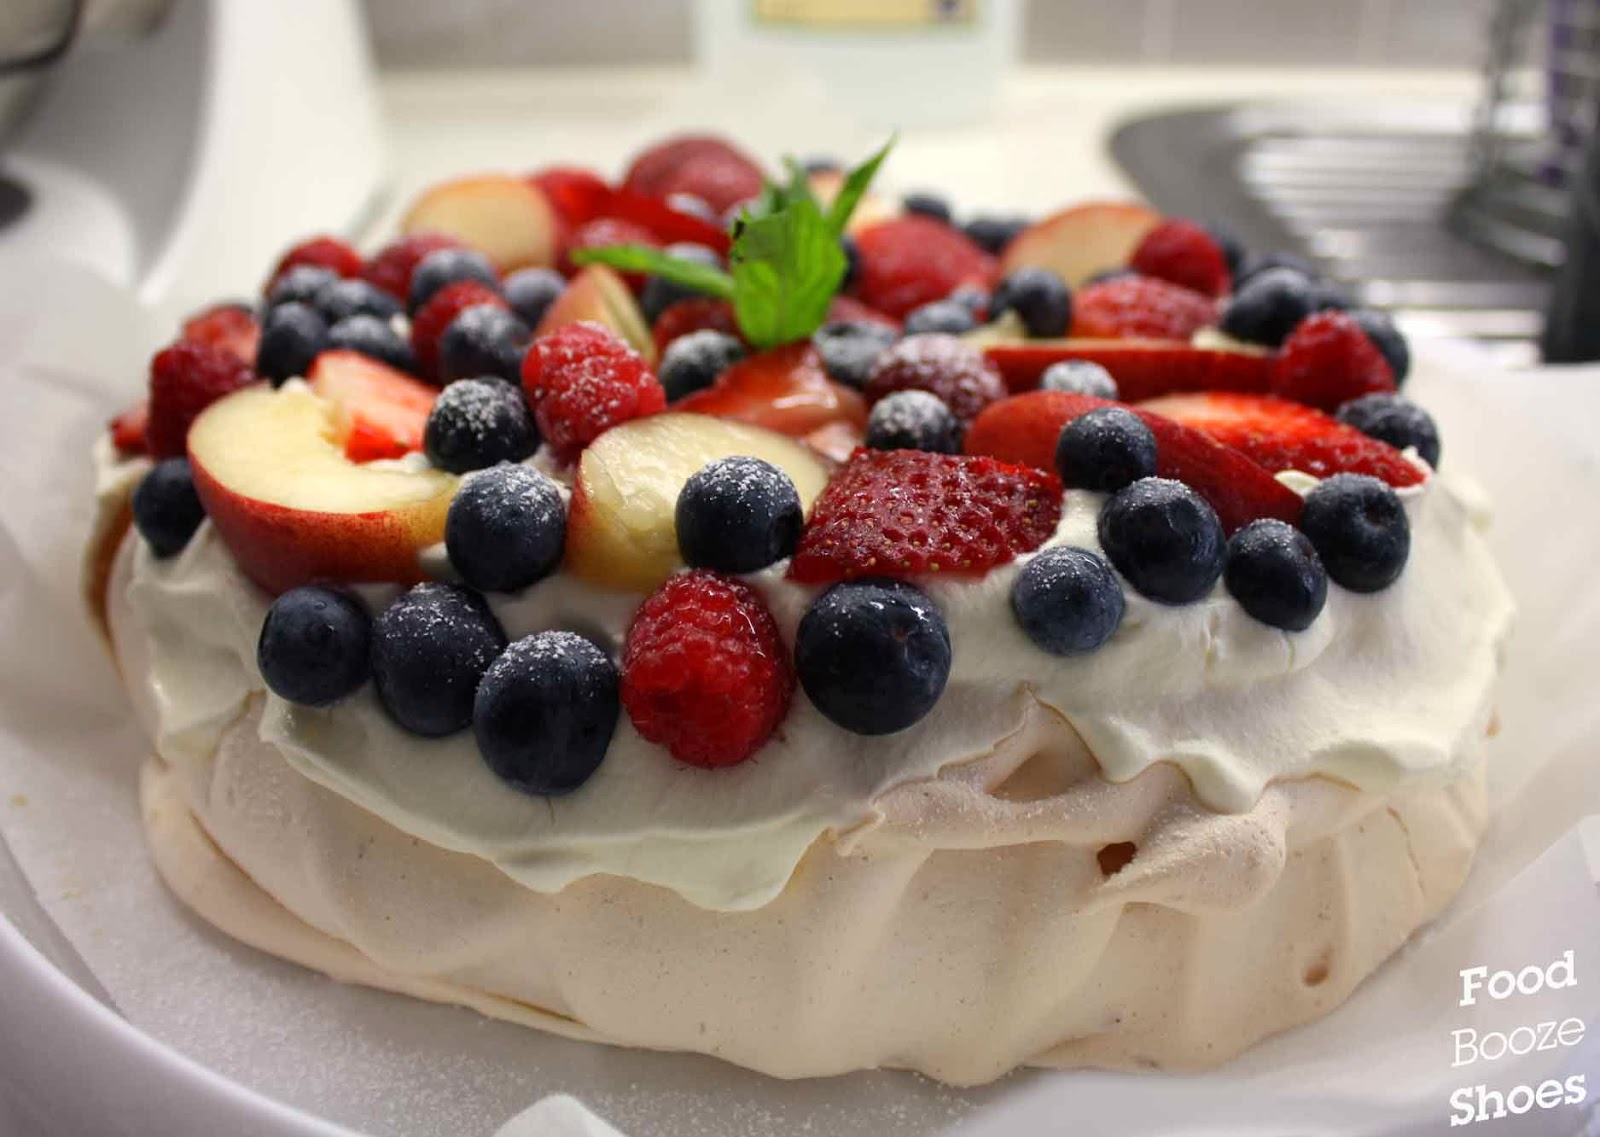 ... , booze and shoes: Merry Christmas to all and to all a happy pavlova